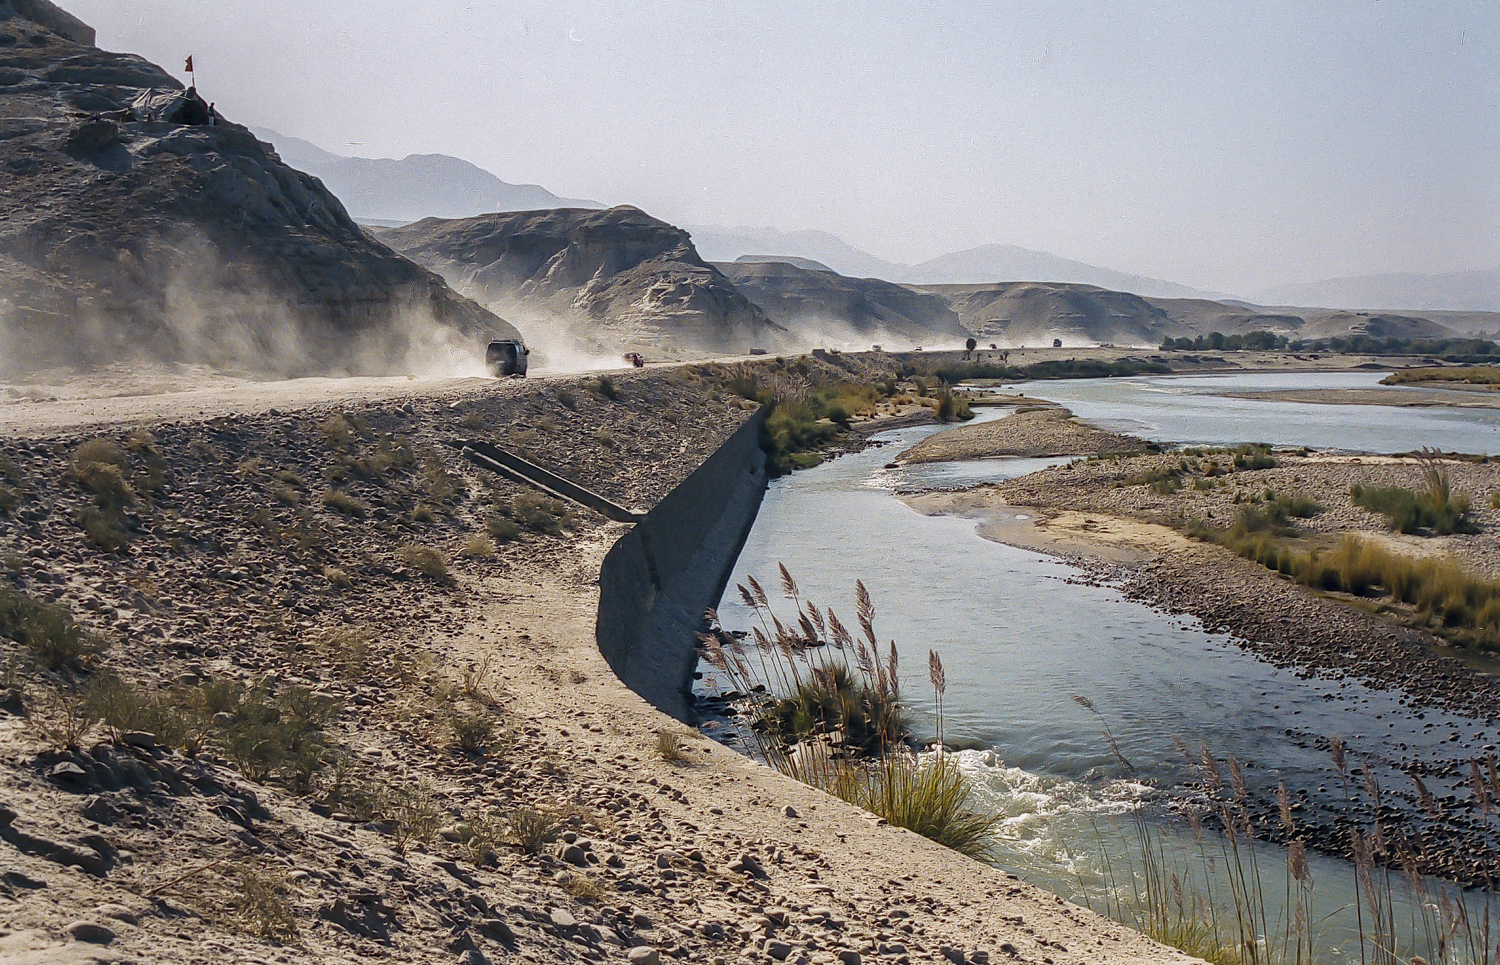 Kabul river, province Laghman, Afghanistan